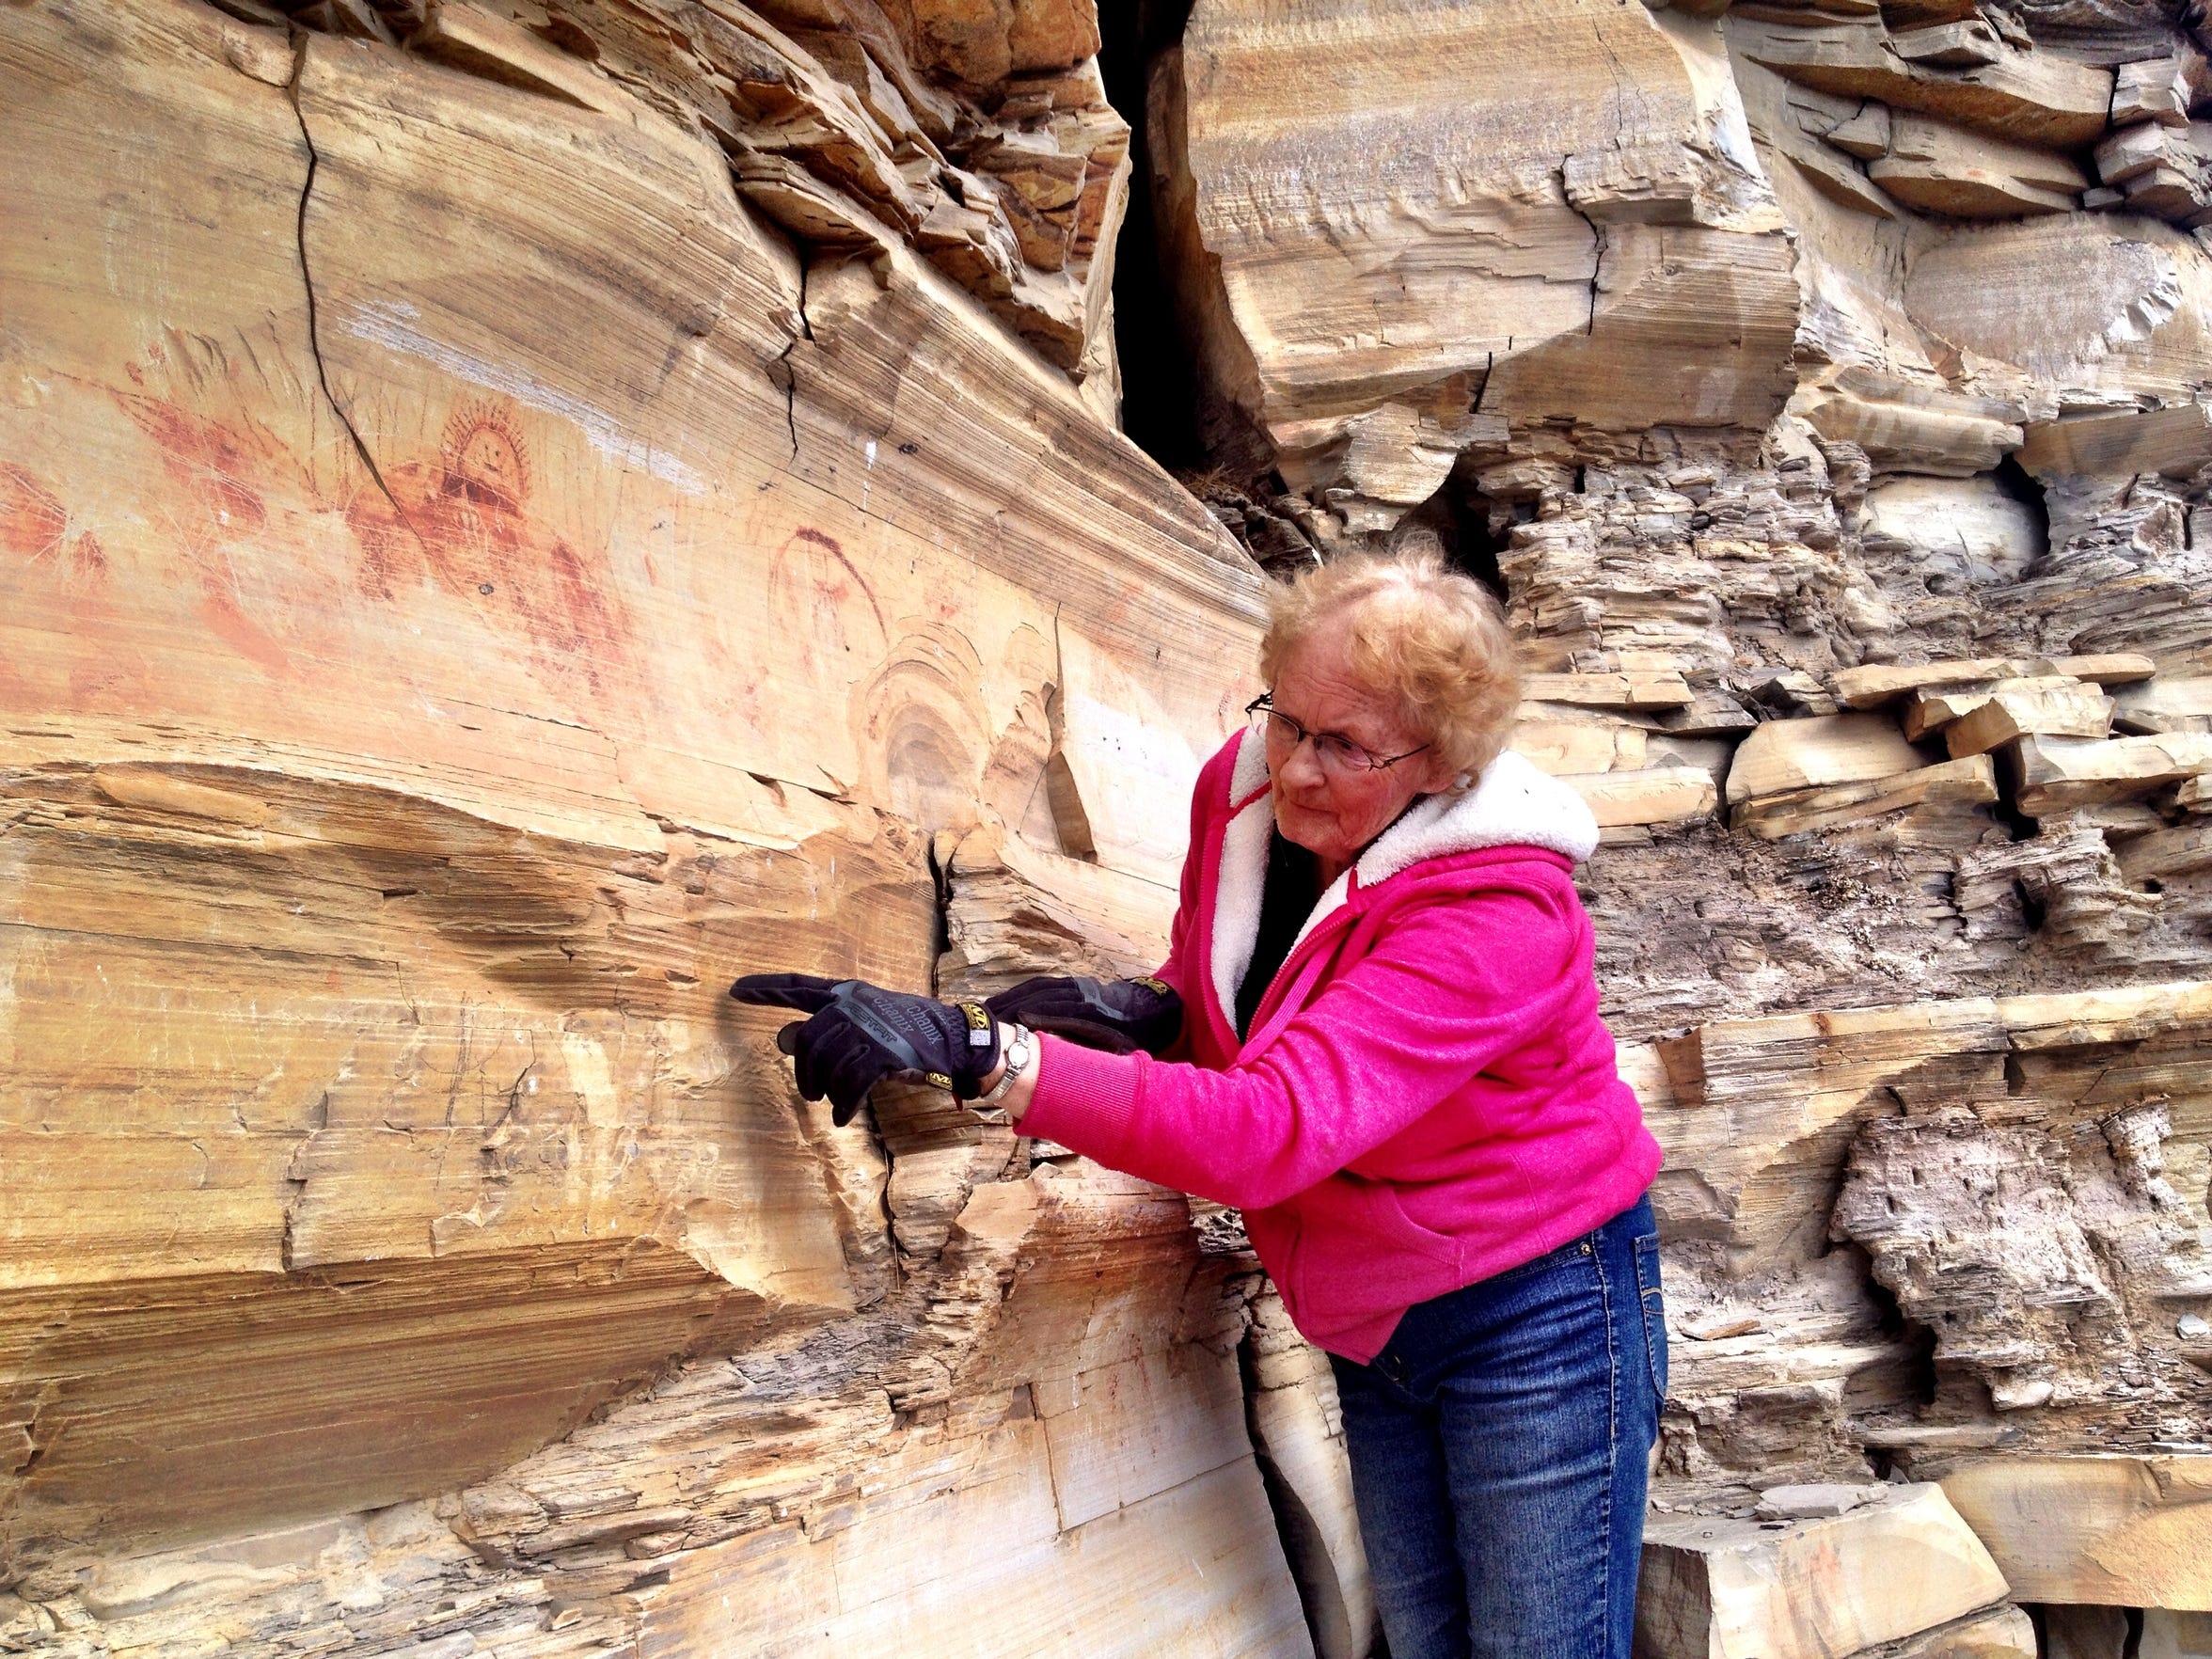 Macie Ahlgren of Bear Gulch Pictographs